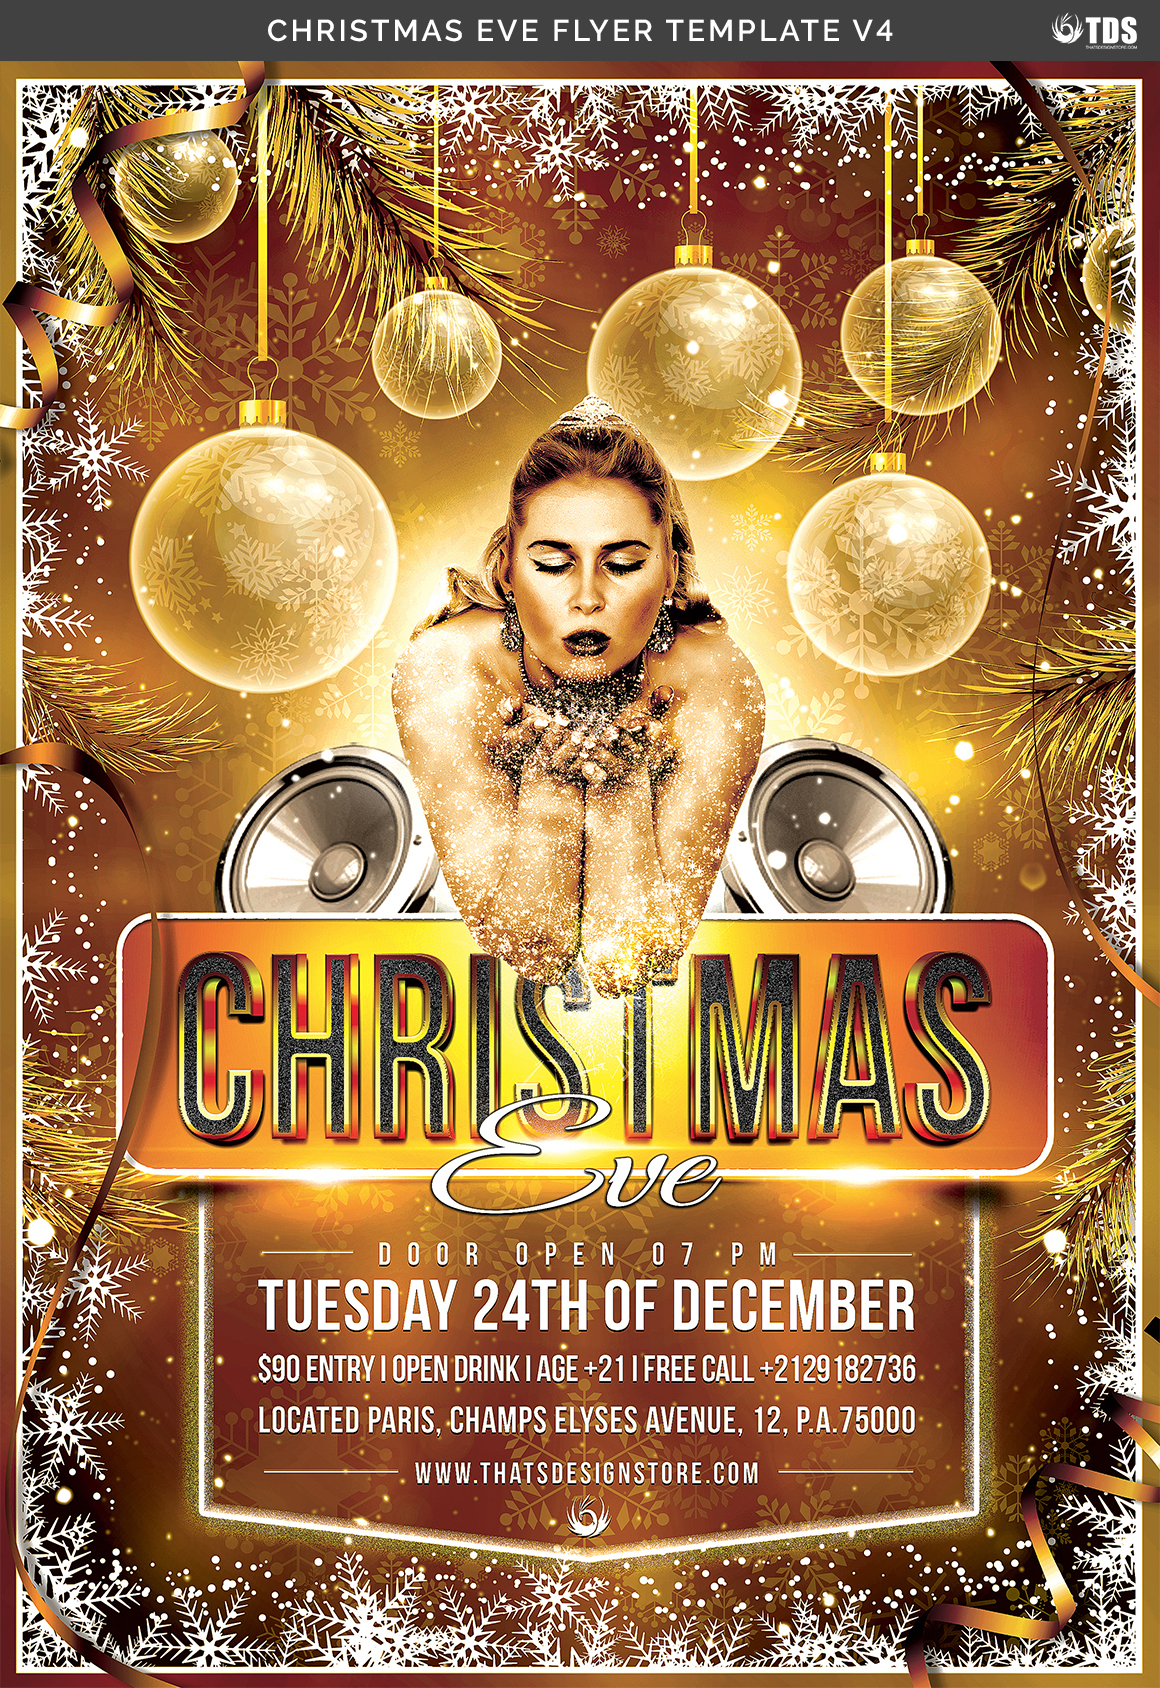 Christmas Eve Flyer Template V4 example image 7